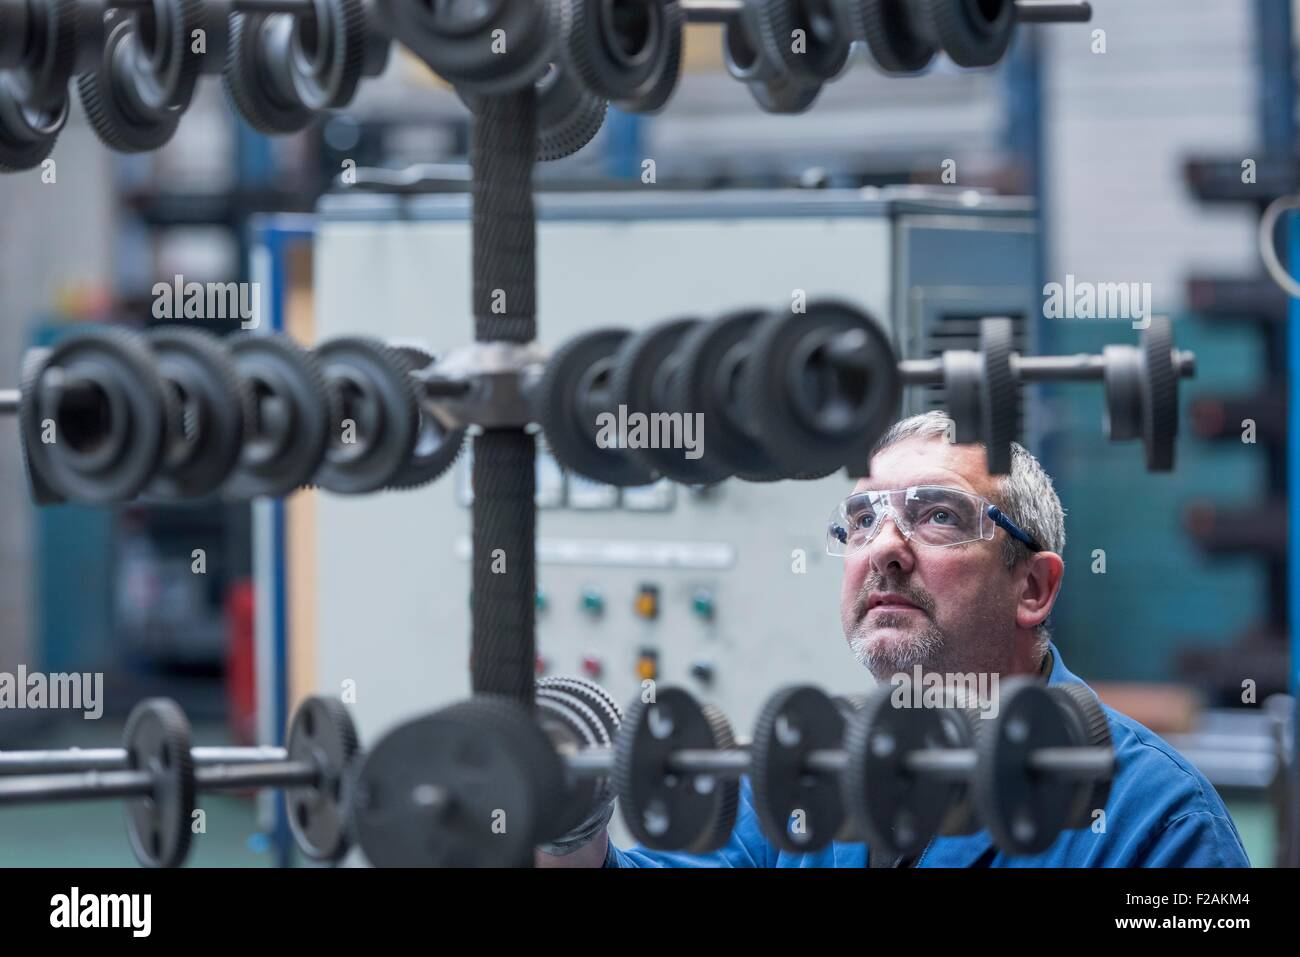 Engineer with shot blasted gear wheels in engineering factory - Stock Image